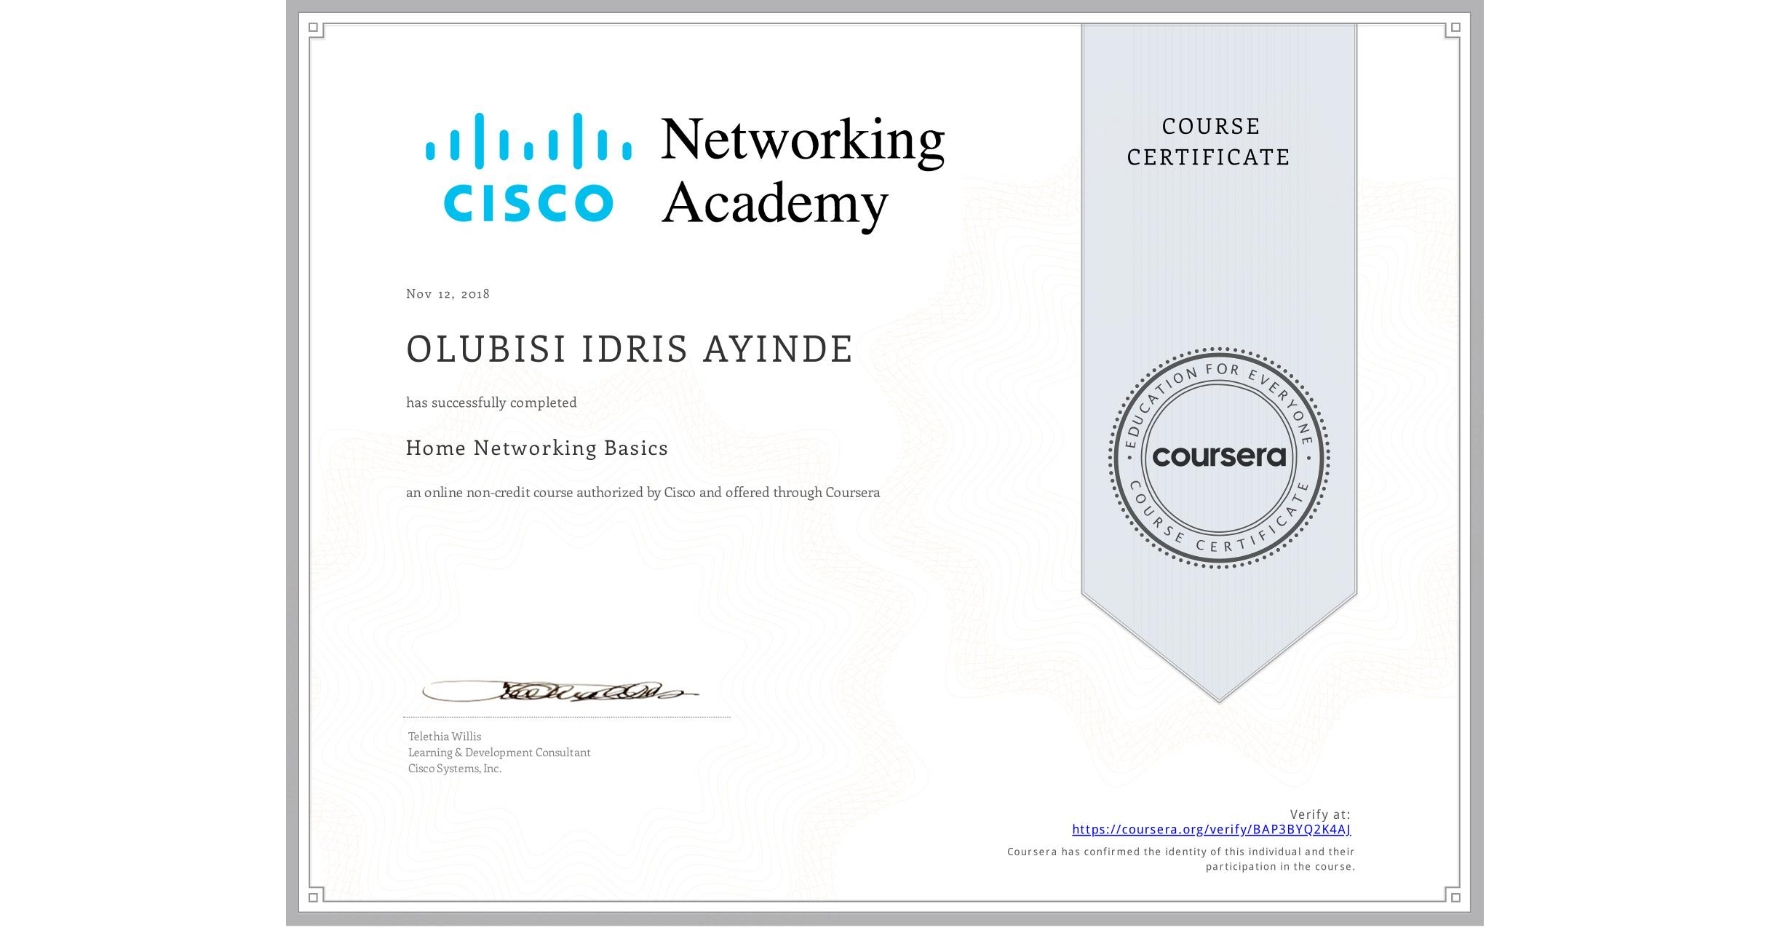 View certificate for OLUBISI IDRIS AYINDE, Home Networking Basics, an online non-credit course authorized by Cisco and offered through Coursera